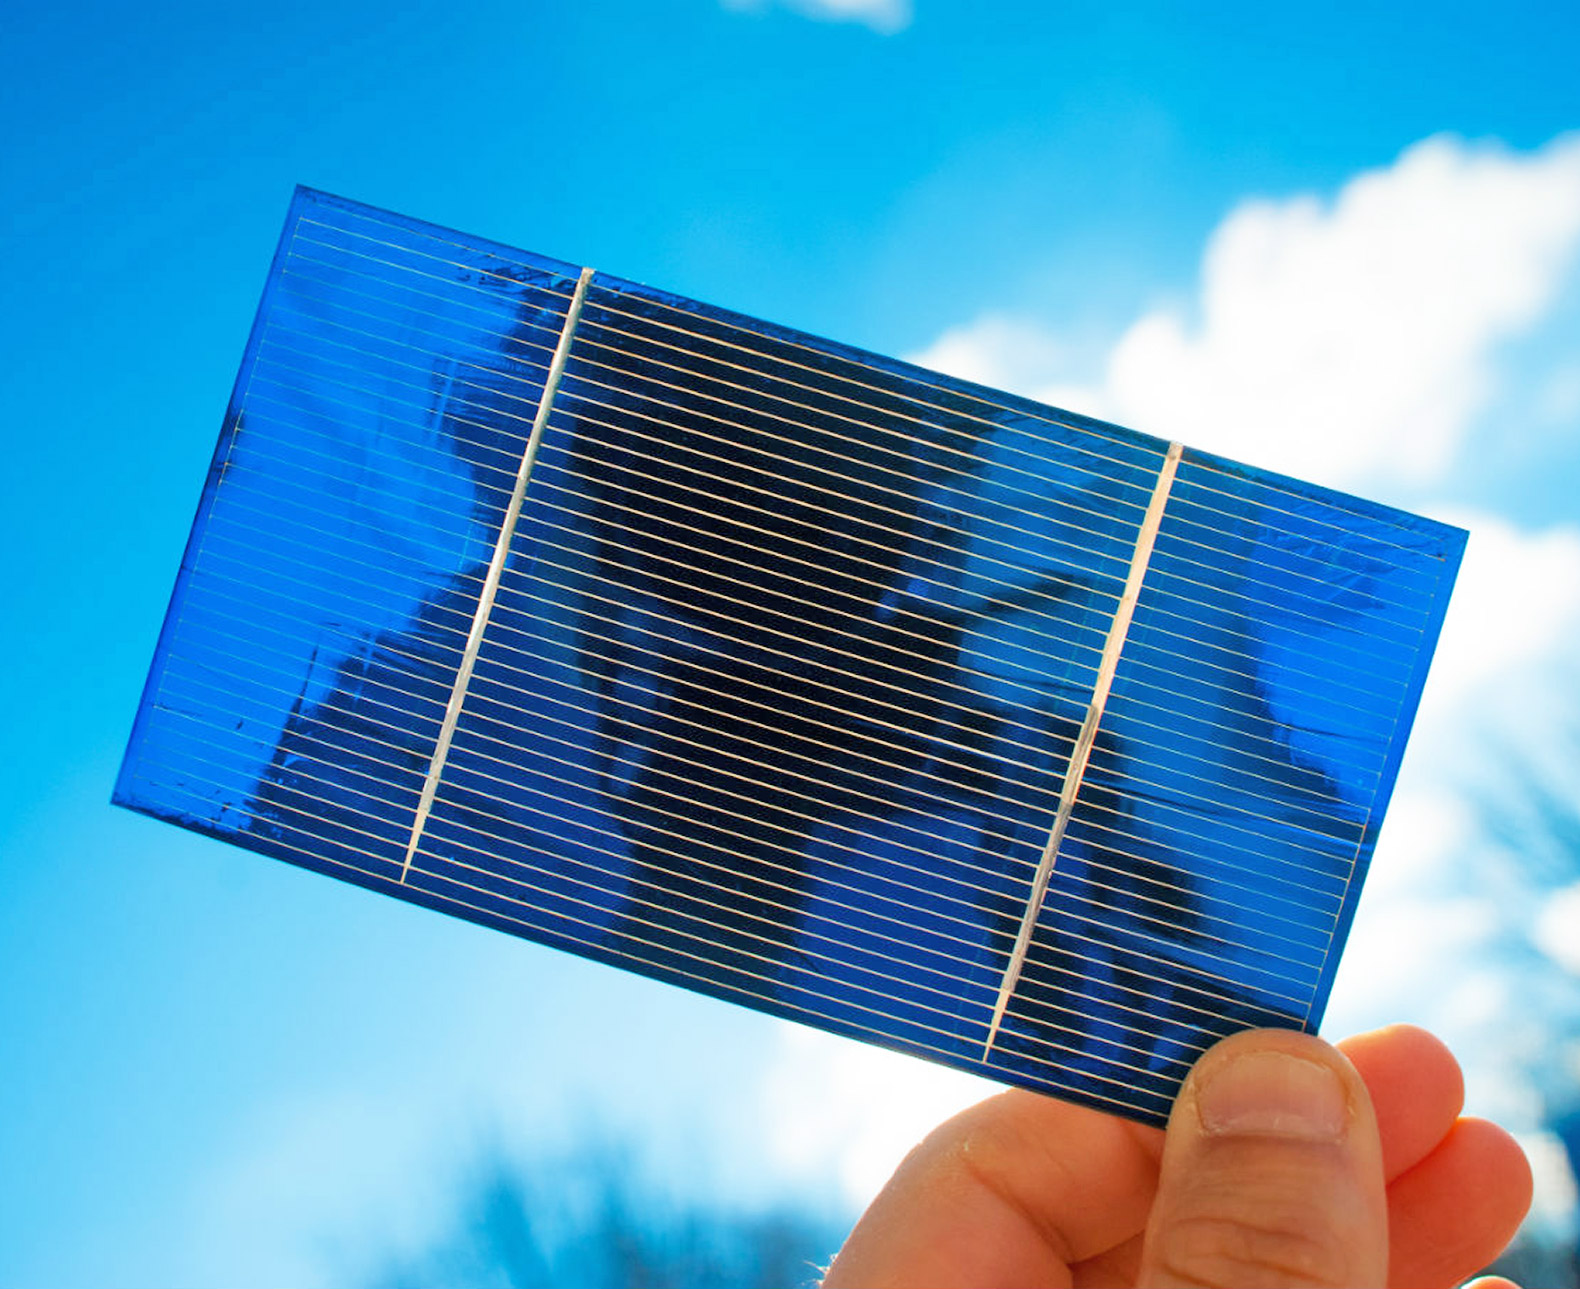 A new kind of glass could create next-gen OLEDs and solar cells